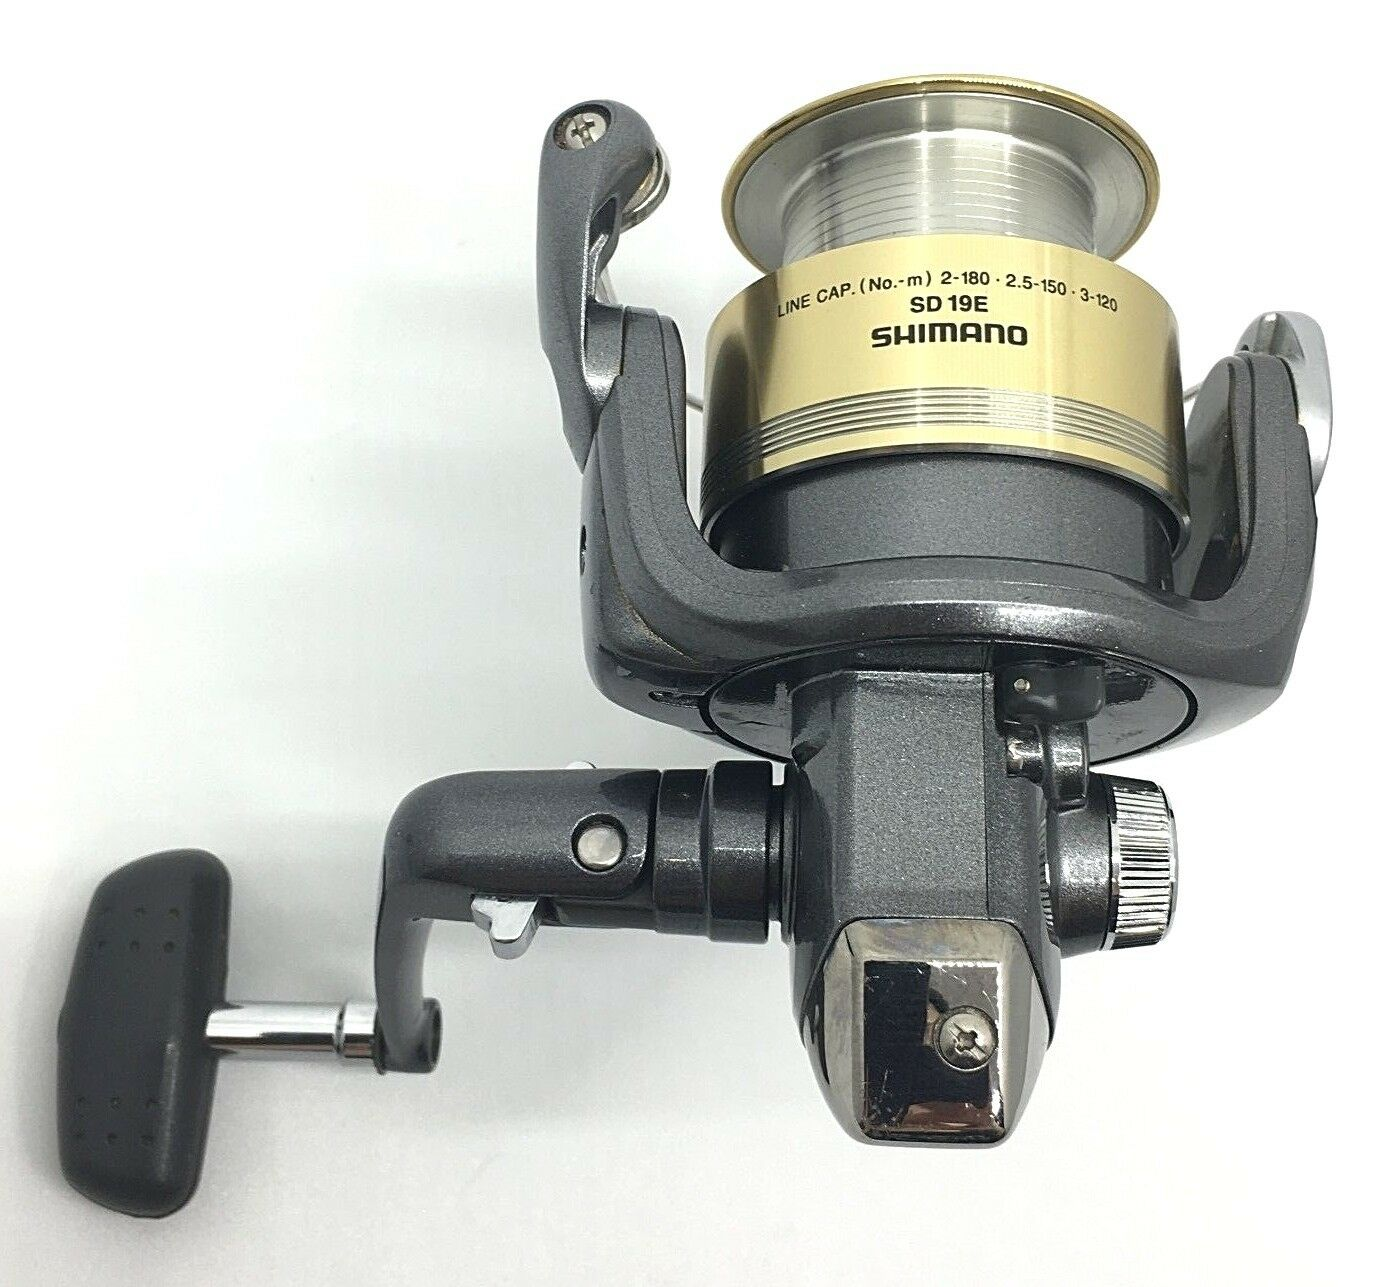 Shimano BB-X DESPINA 2500D Spinning Reel Fishing Fishing Fishing w/Box <Excellent+++  From JAPAN a4e28f